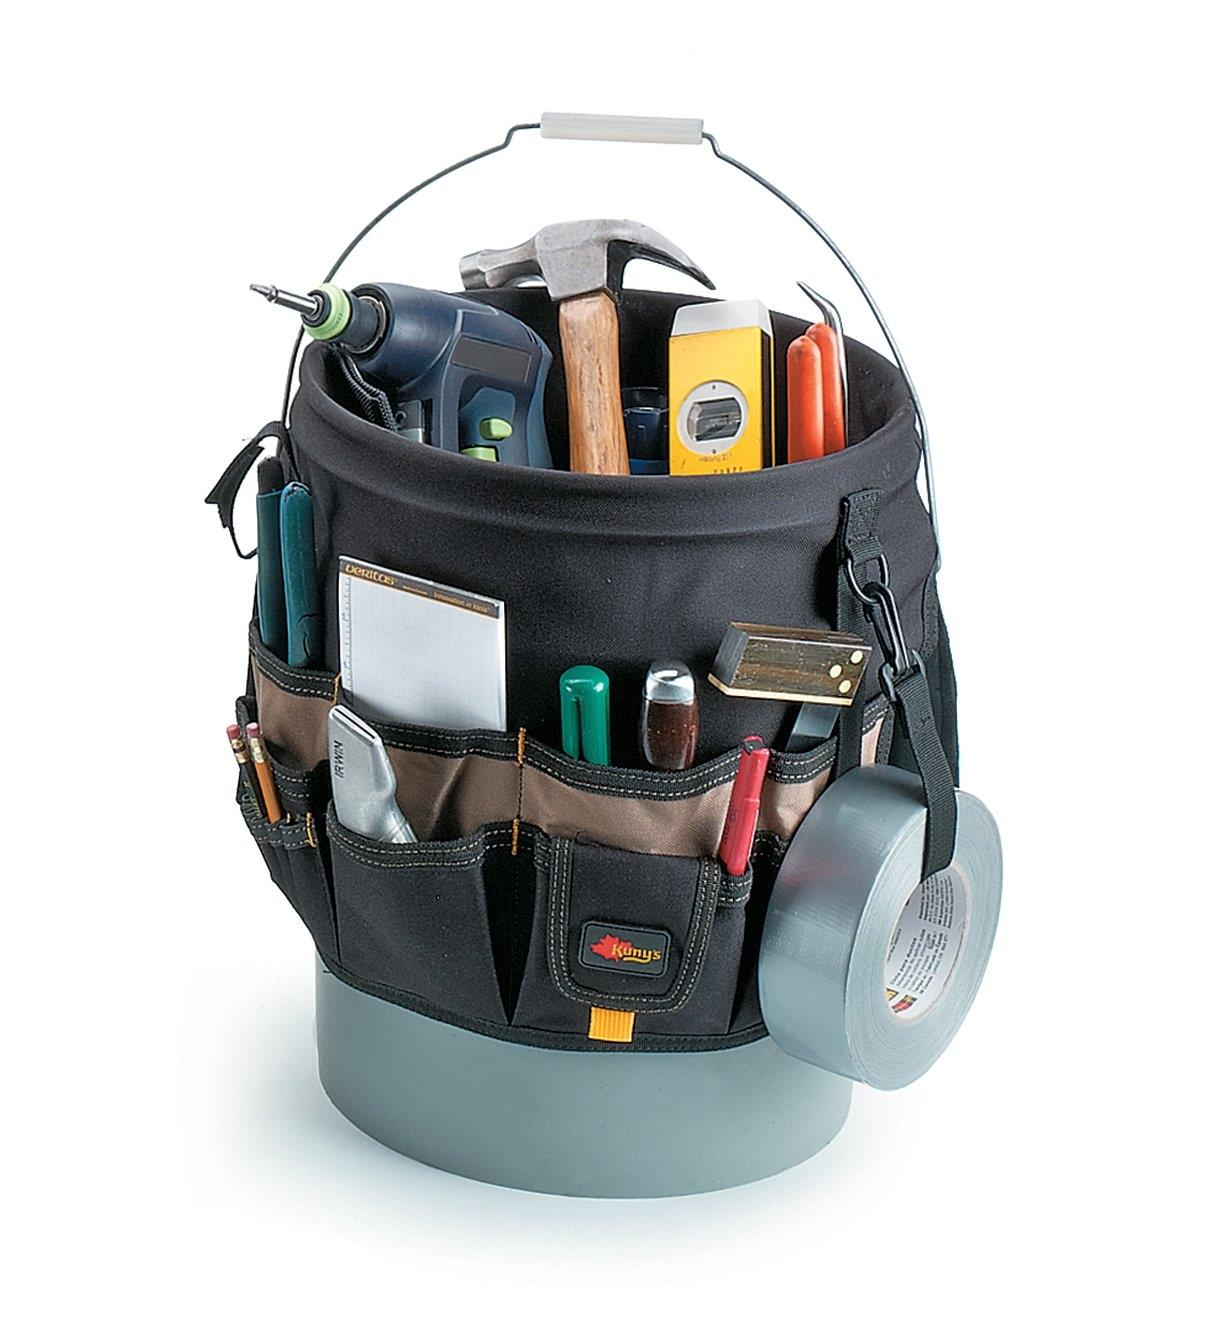 48-Pocket Tool Carrier mounted on a bucket, with tools inside and in the outer pockets